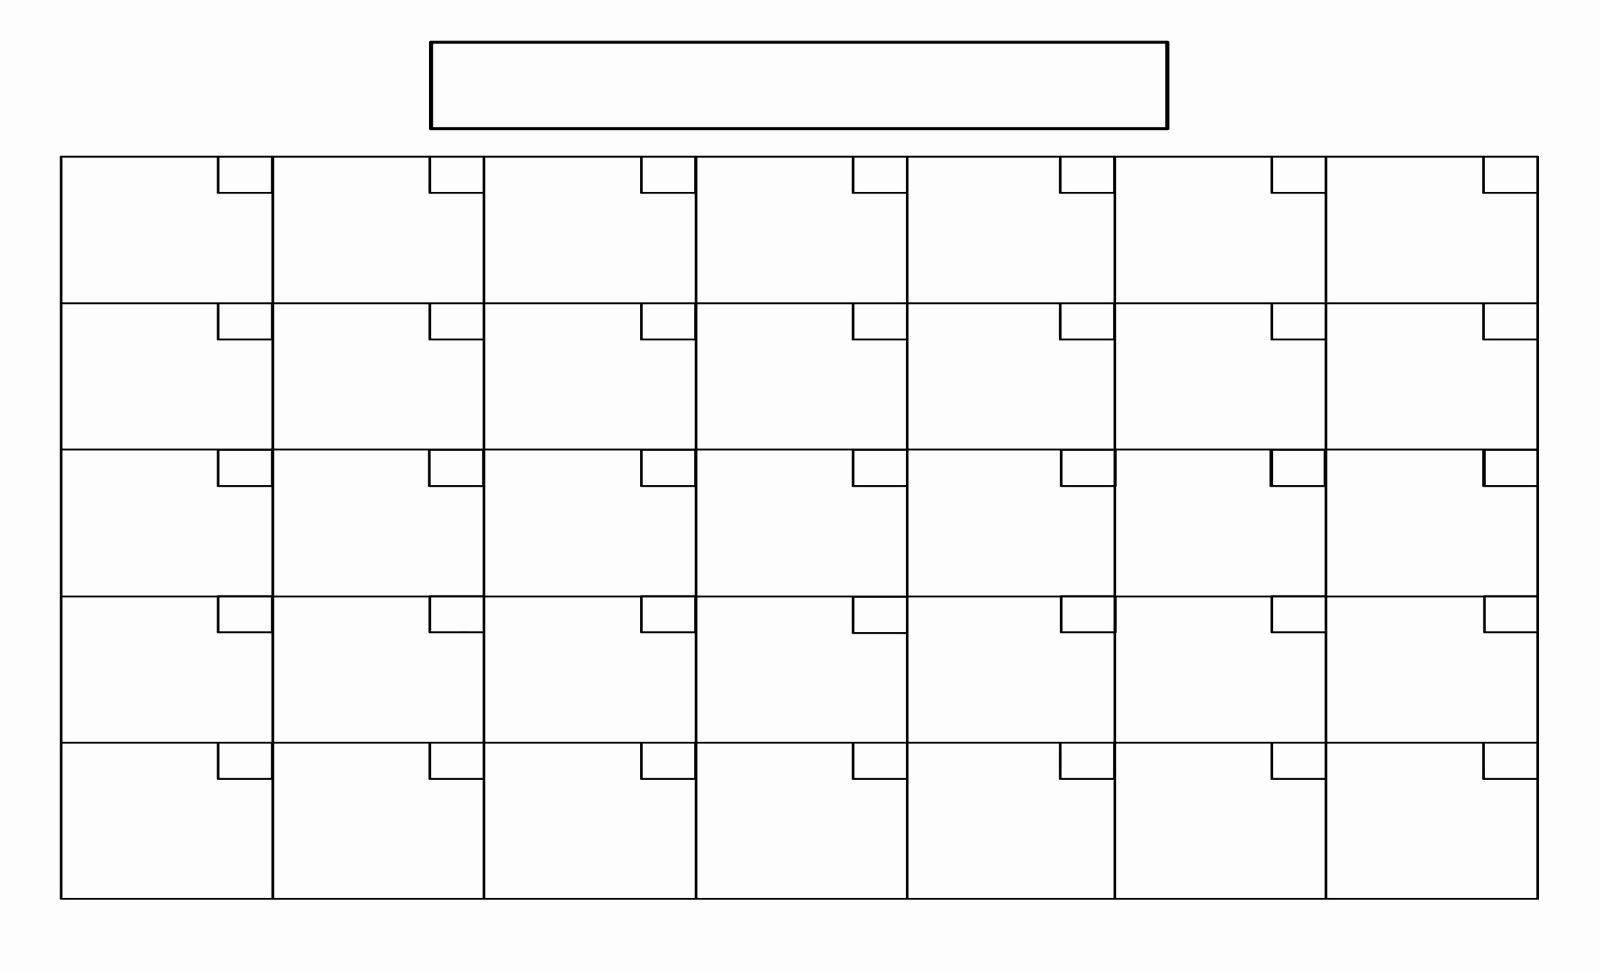 Printable Calendar Legal Size In 2020 | Blank Monthly in Legal Size Printable Monthly Calendar 2020